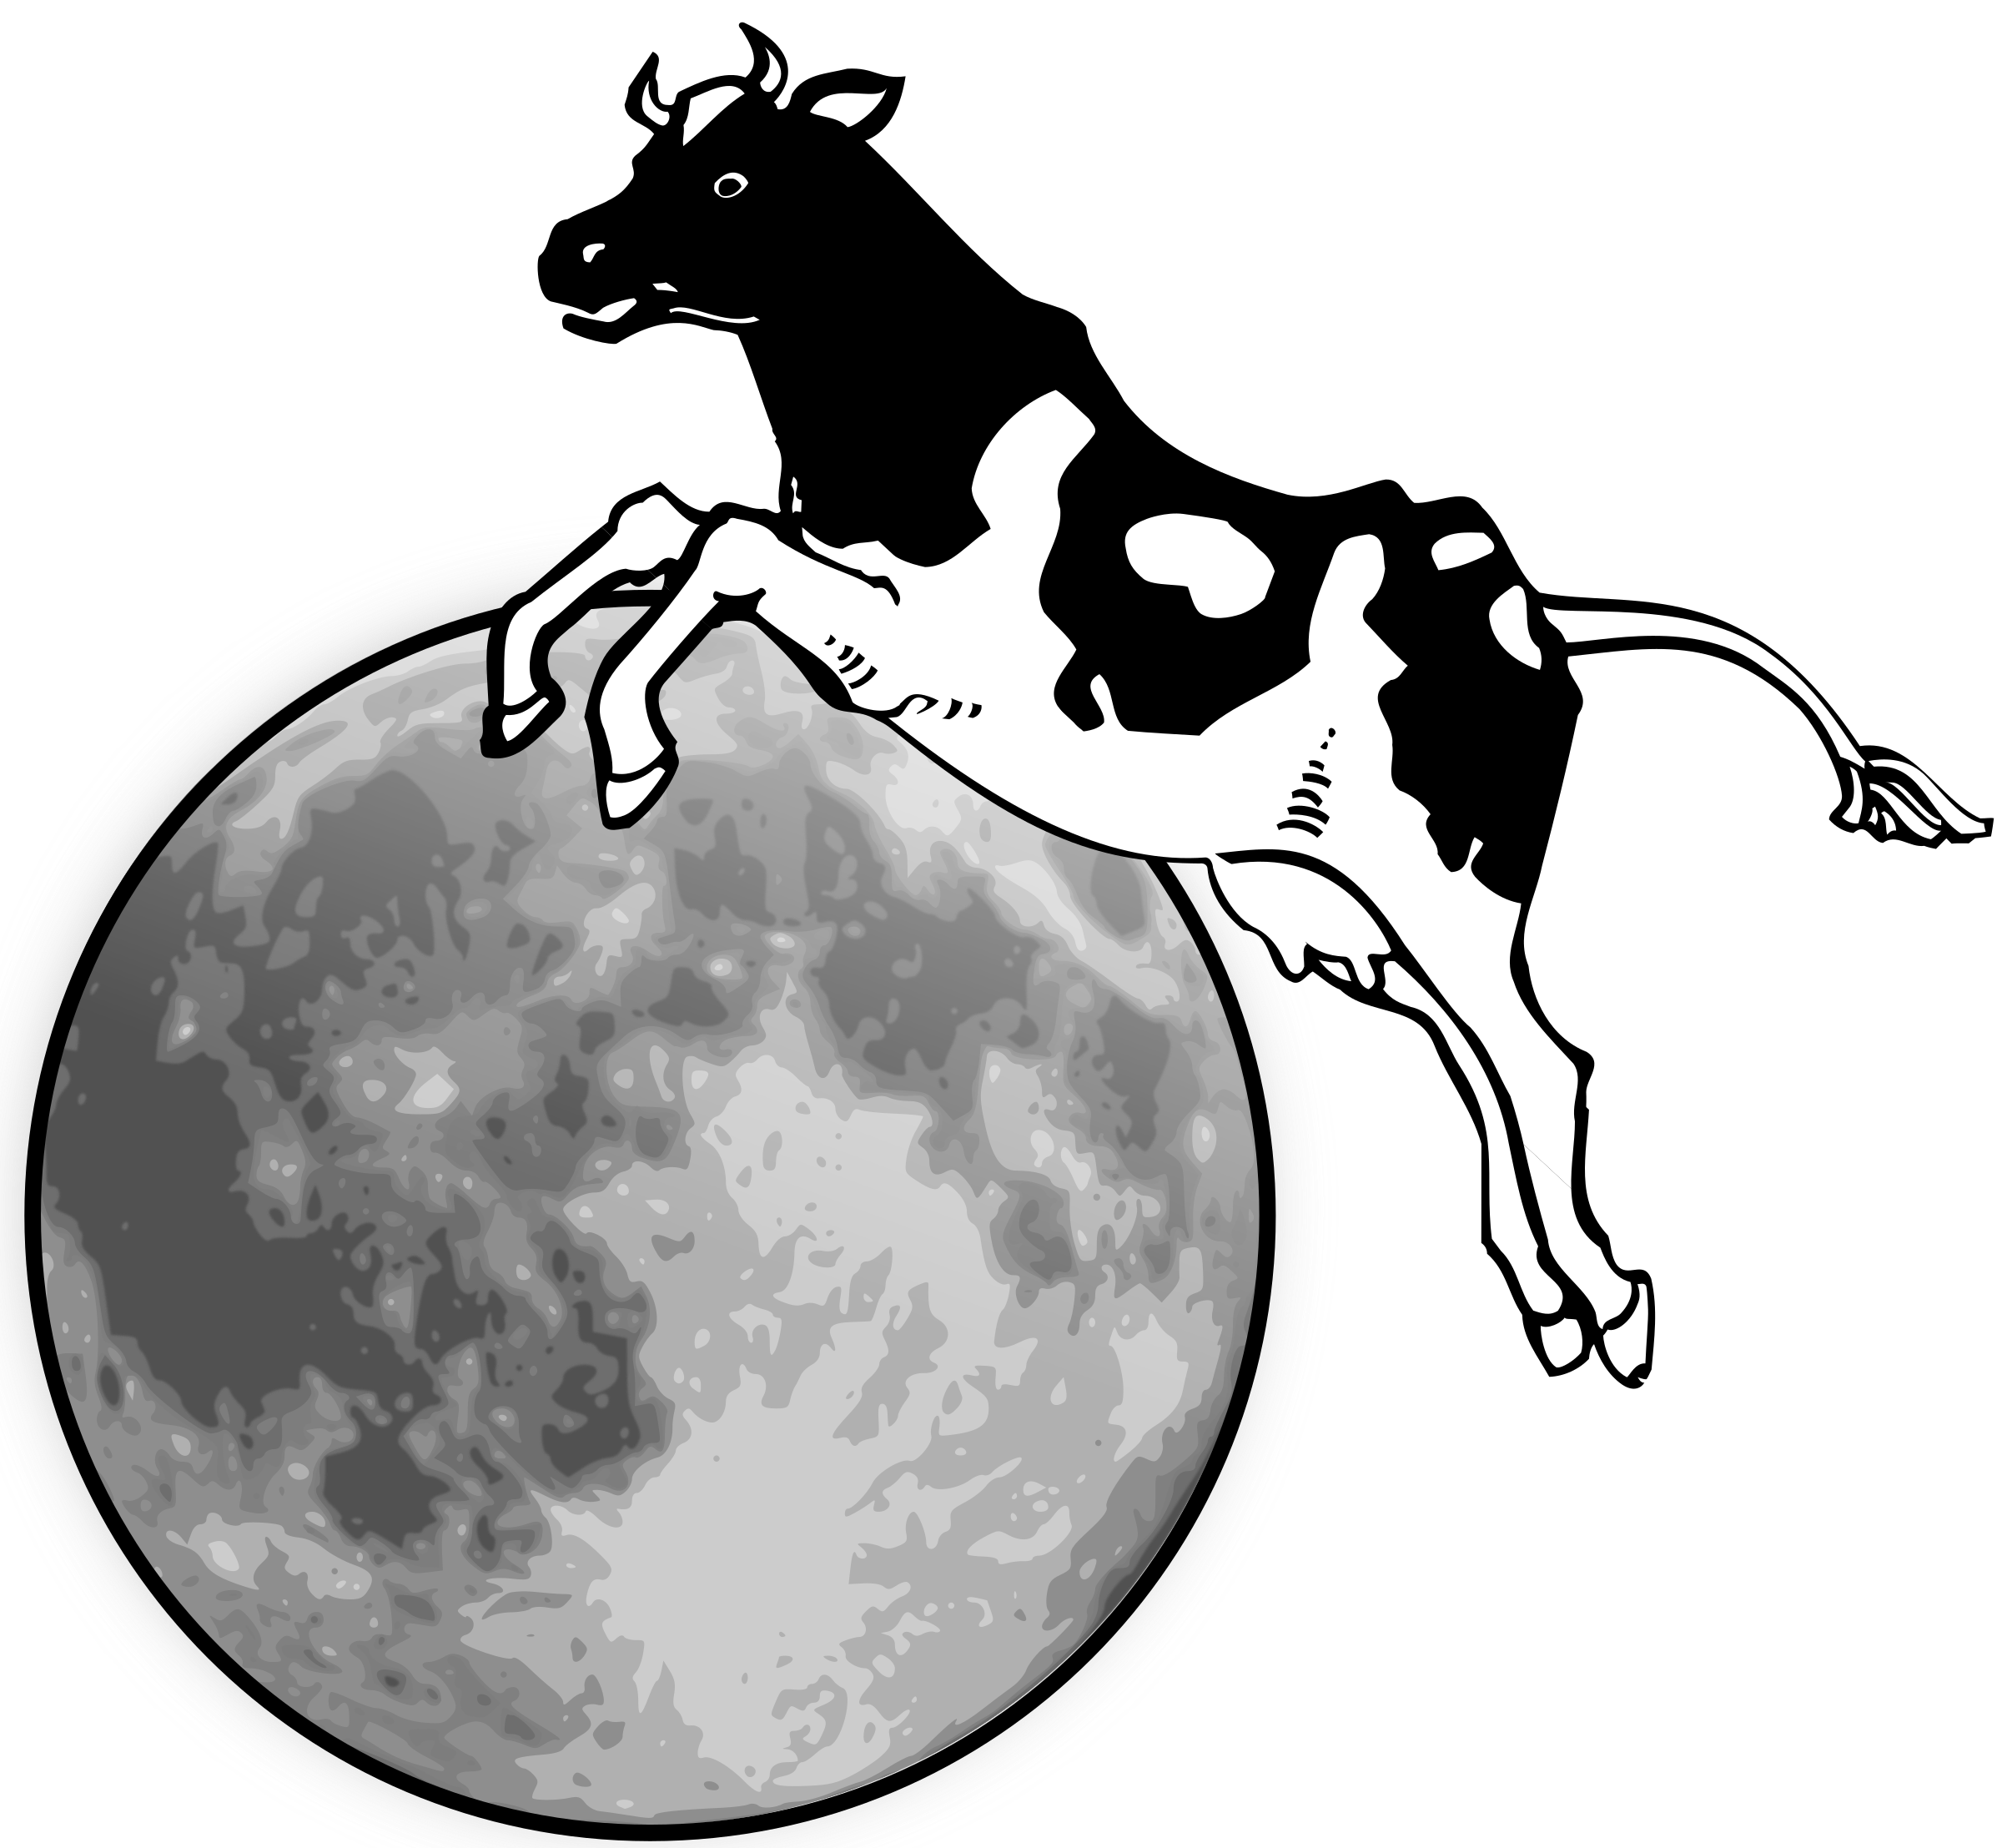 clipart free The cow jumps over. Clipart moon black and white